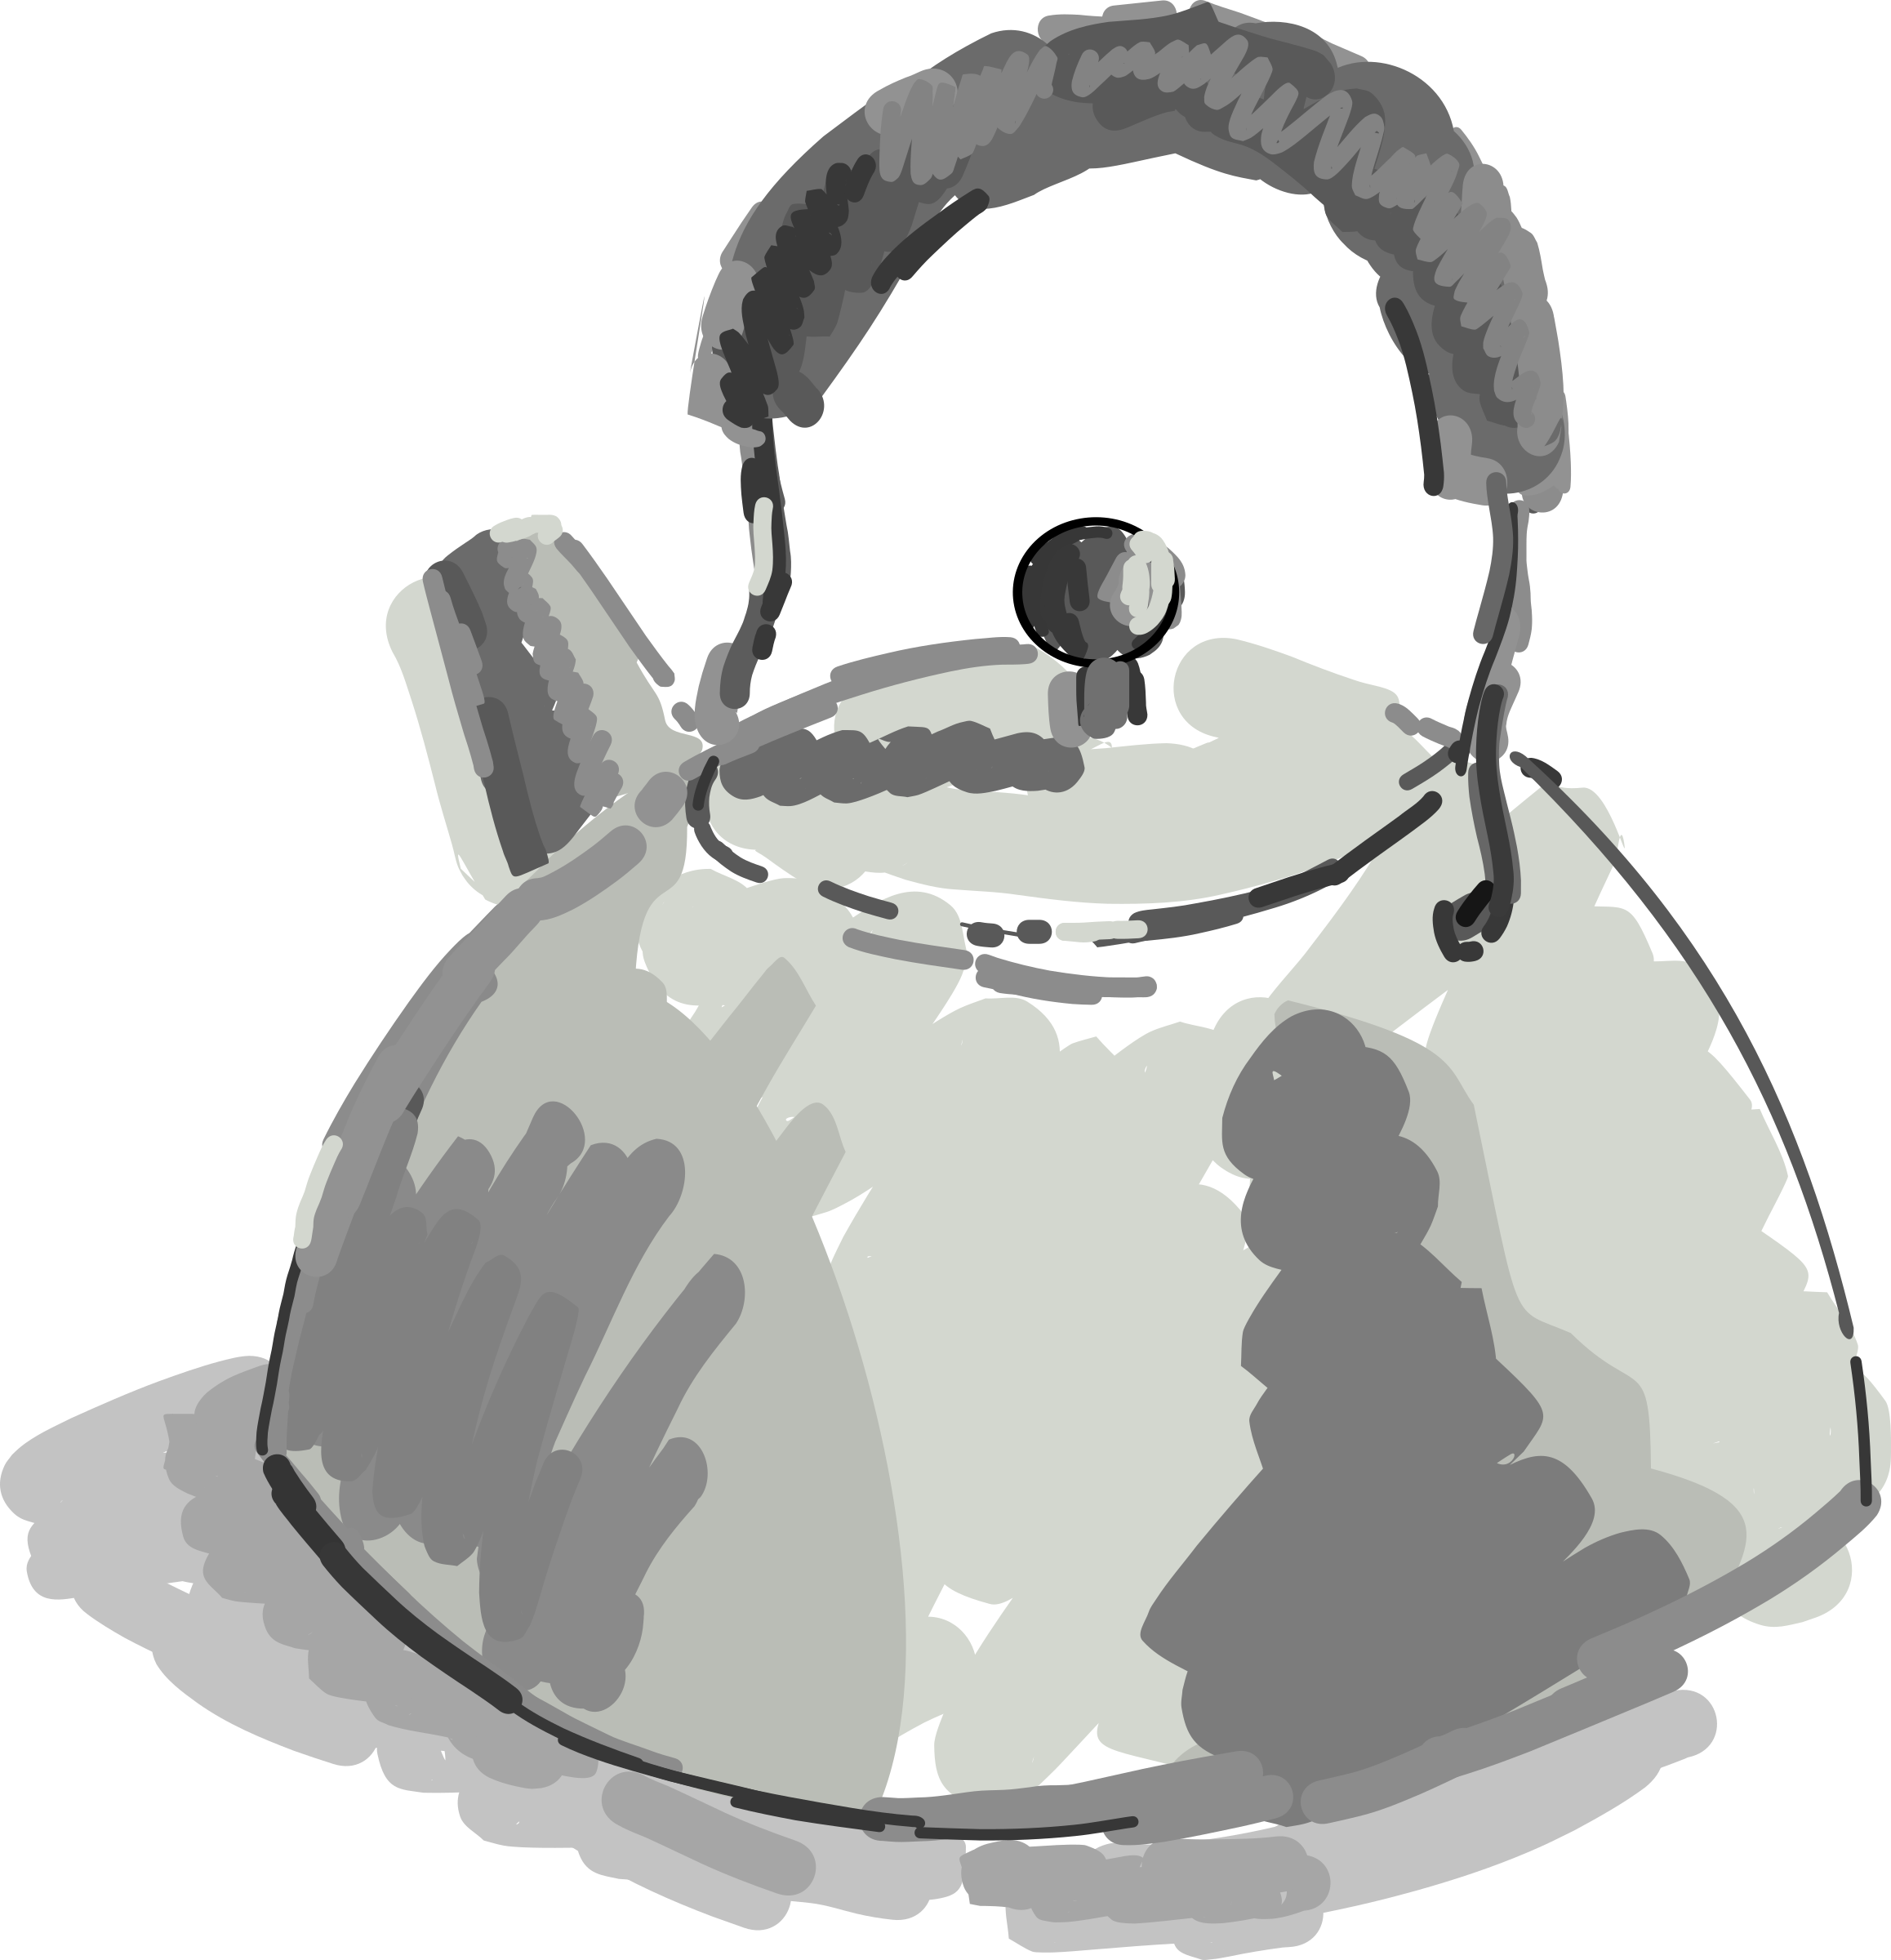 Kettle by dominiquechappard